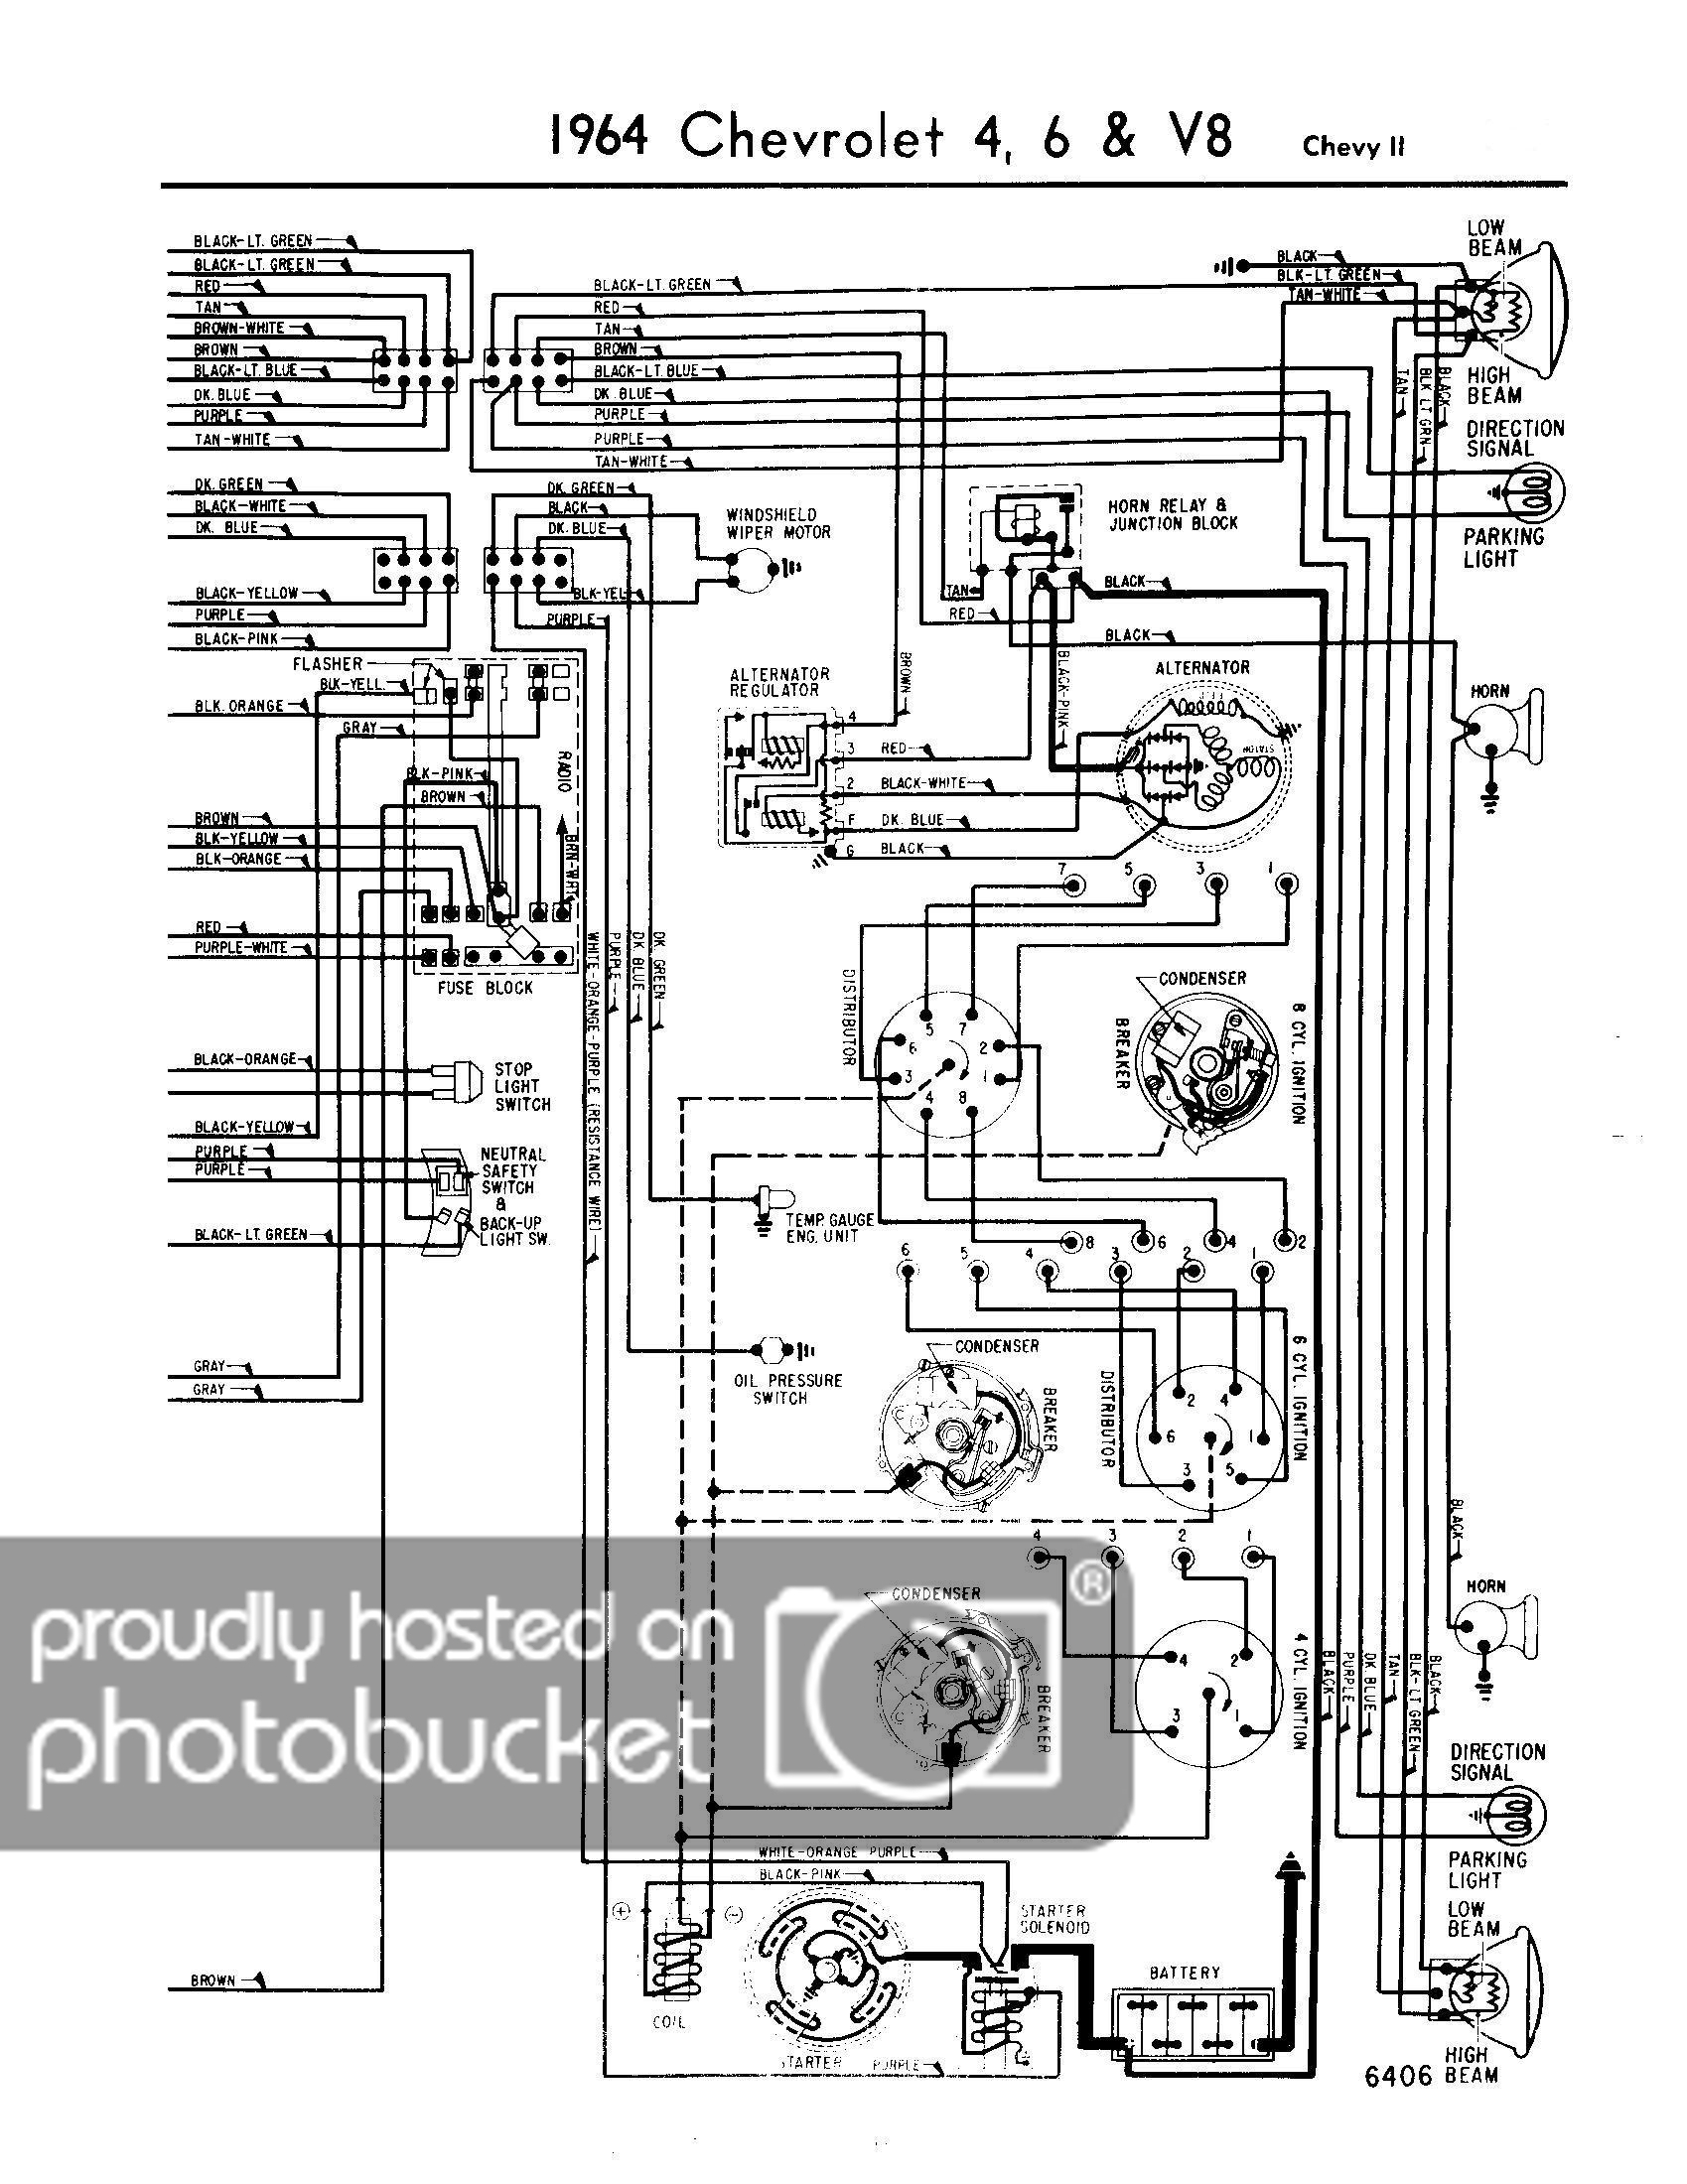 1972 C10 Steering Column Wiring Diagram | Wiring Diagram - Chevy Steering Column Wiring Diagram